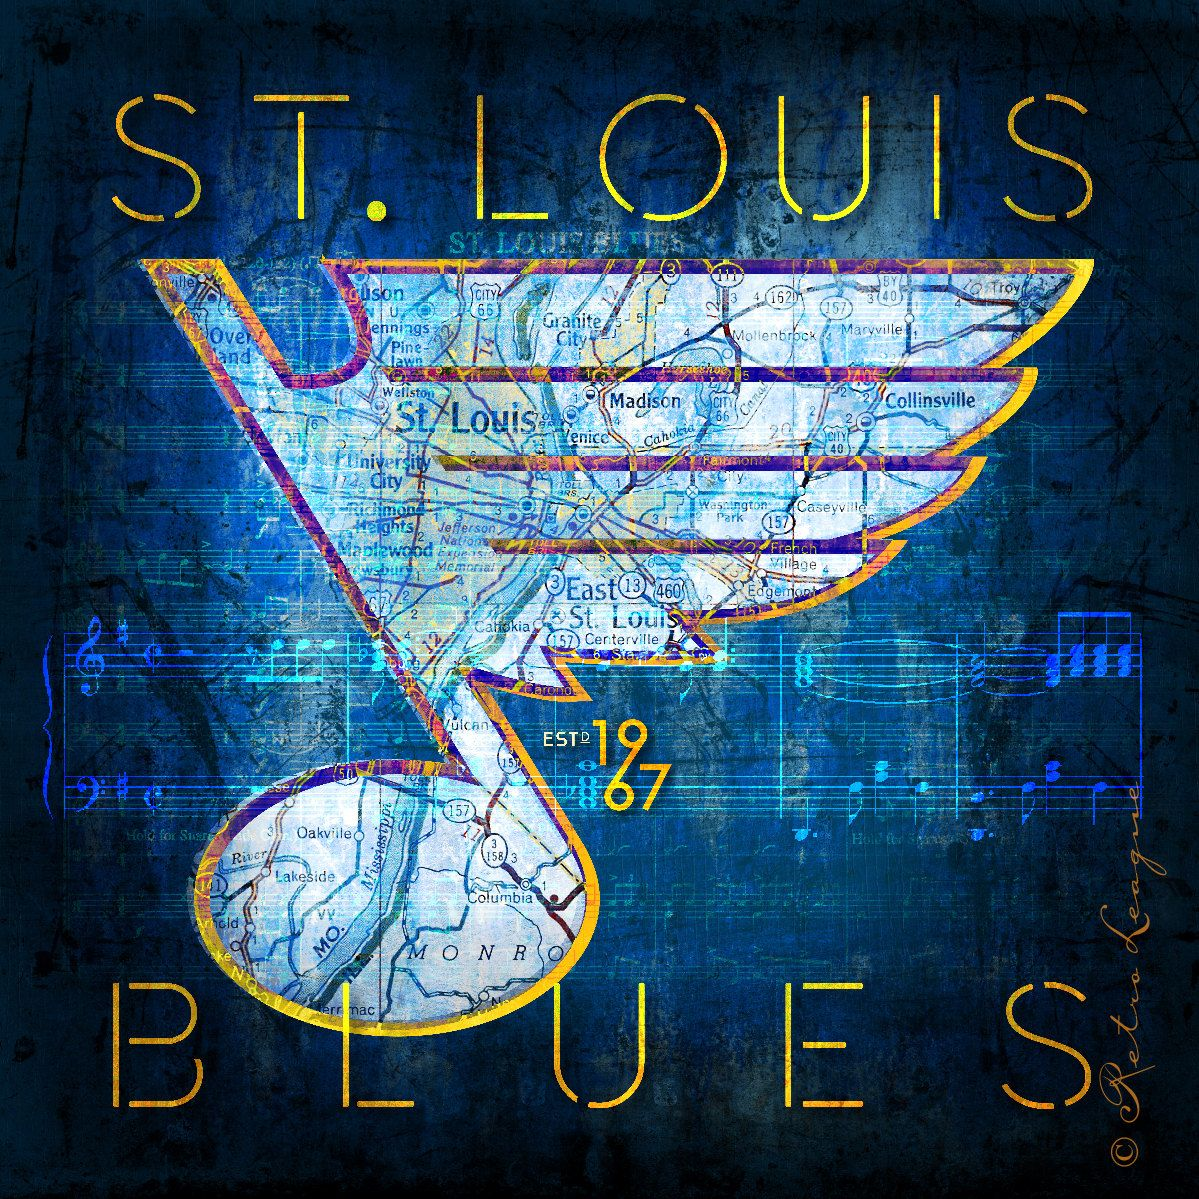 St louis blues map art perfect birthday by retroleague on etsy